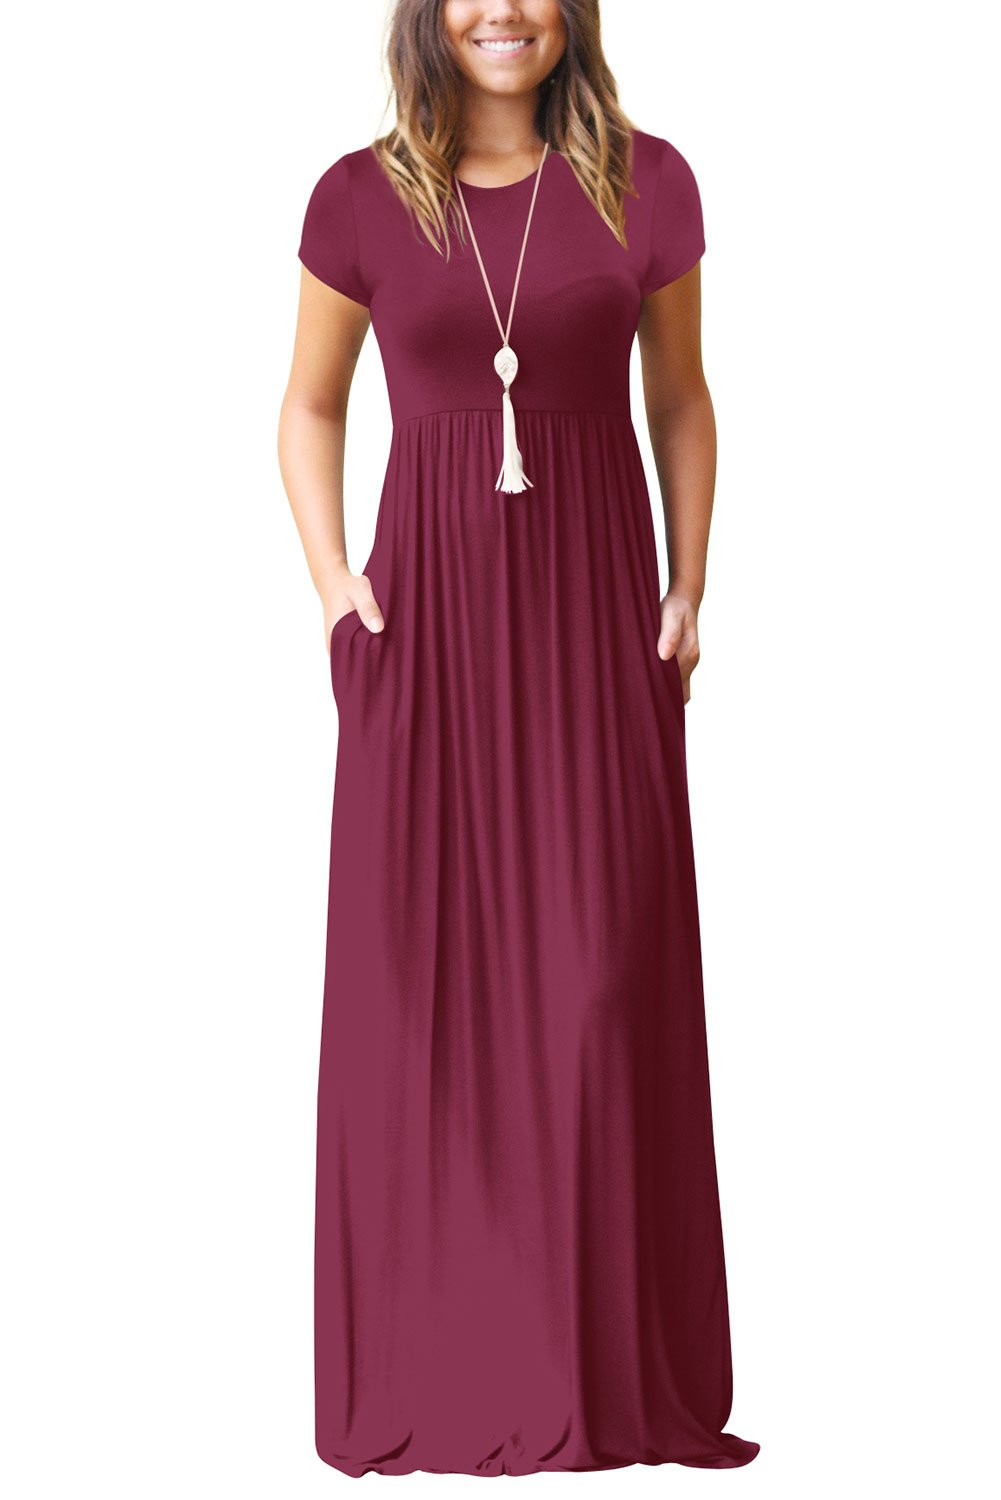 Dasbayla Women's Casual Long/Short Sleeve Maxi Dress with Pockets MD6888